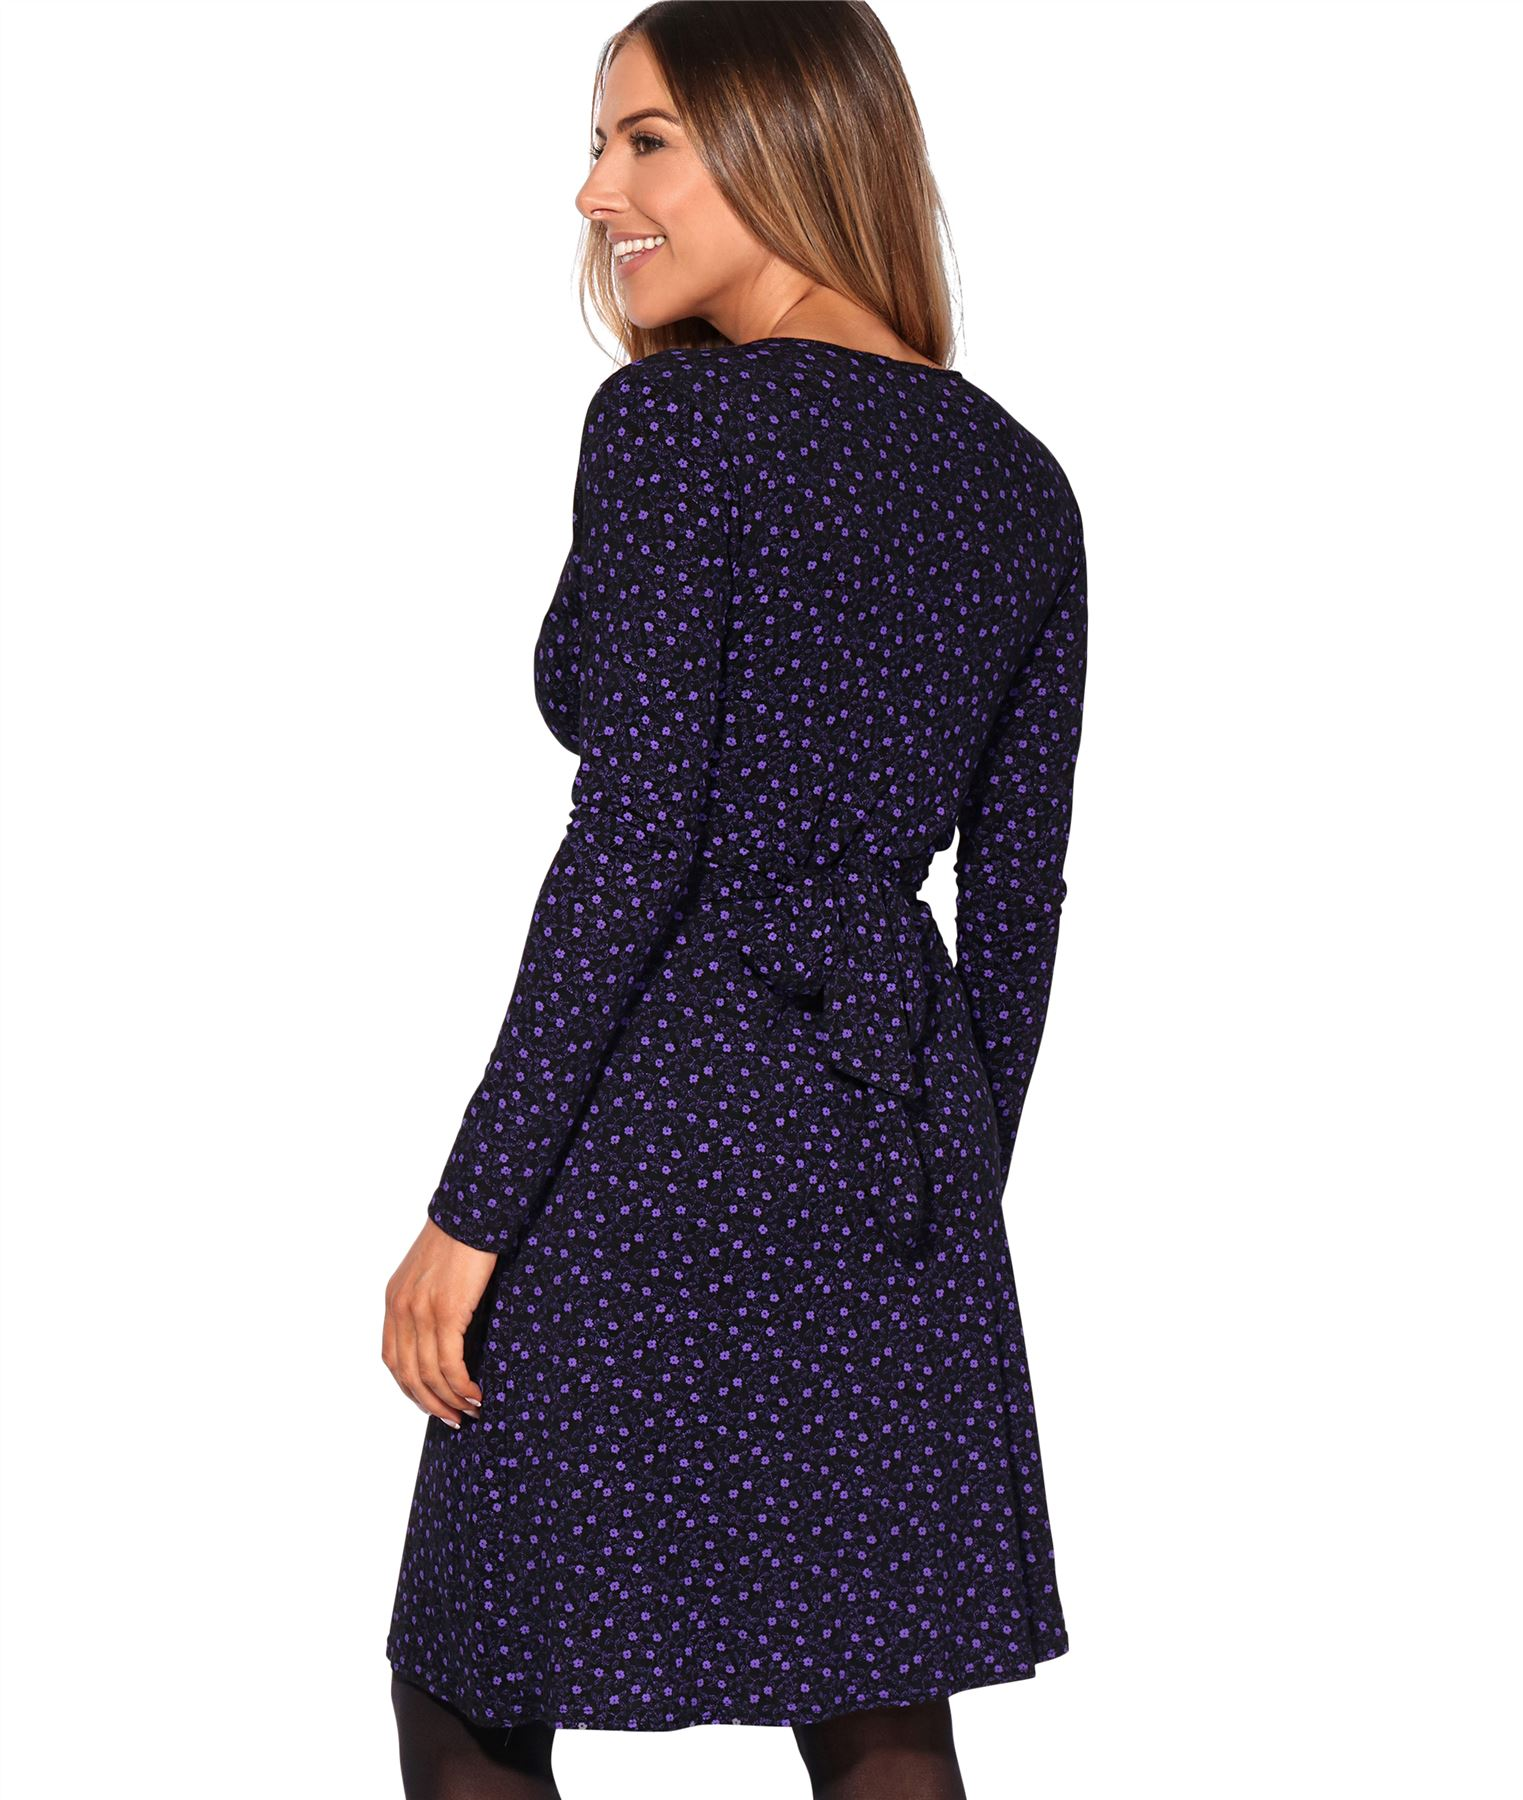 Womens-Ladies-Pattern-Dress-Drape-Print-Stretch-Long-Sleeve-Ruched-Knot-Party thumbnail 7